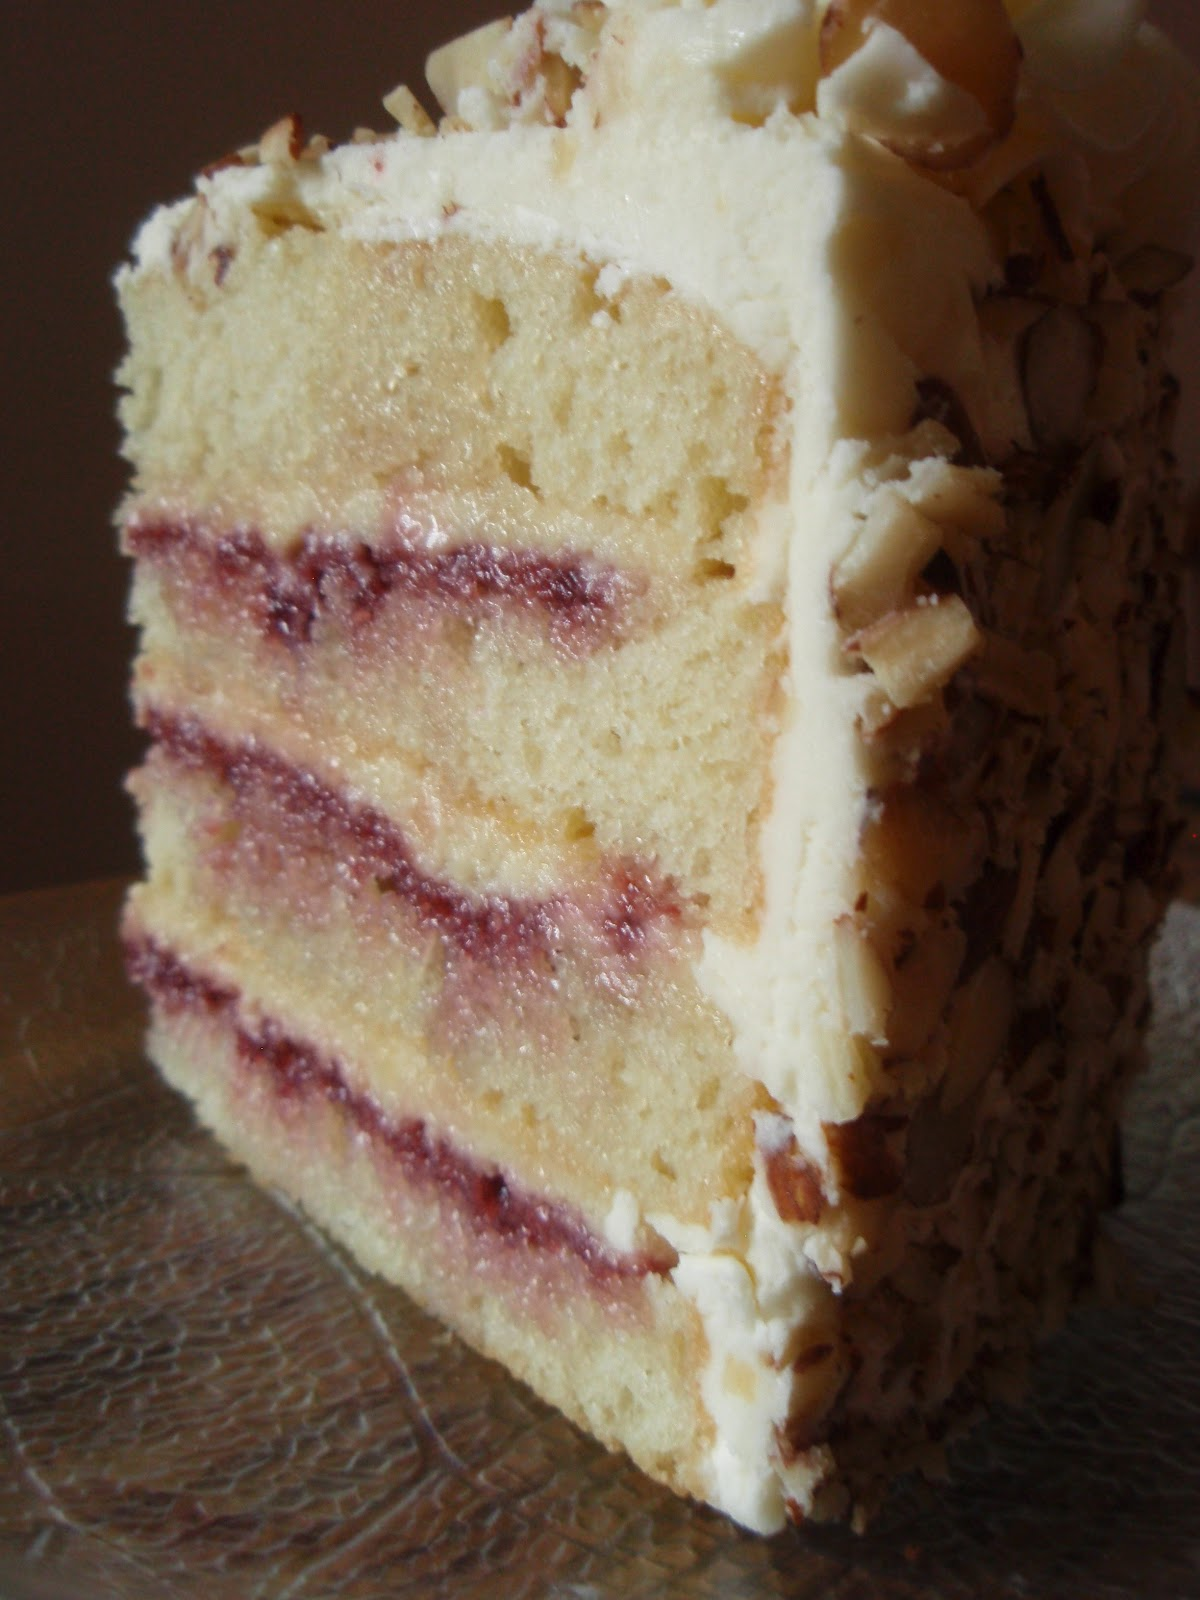 Raspberry Almond Dream Cake